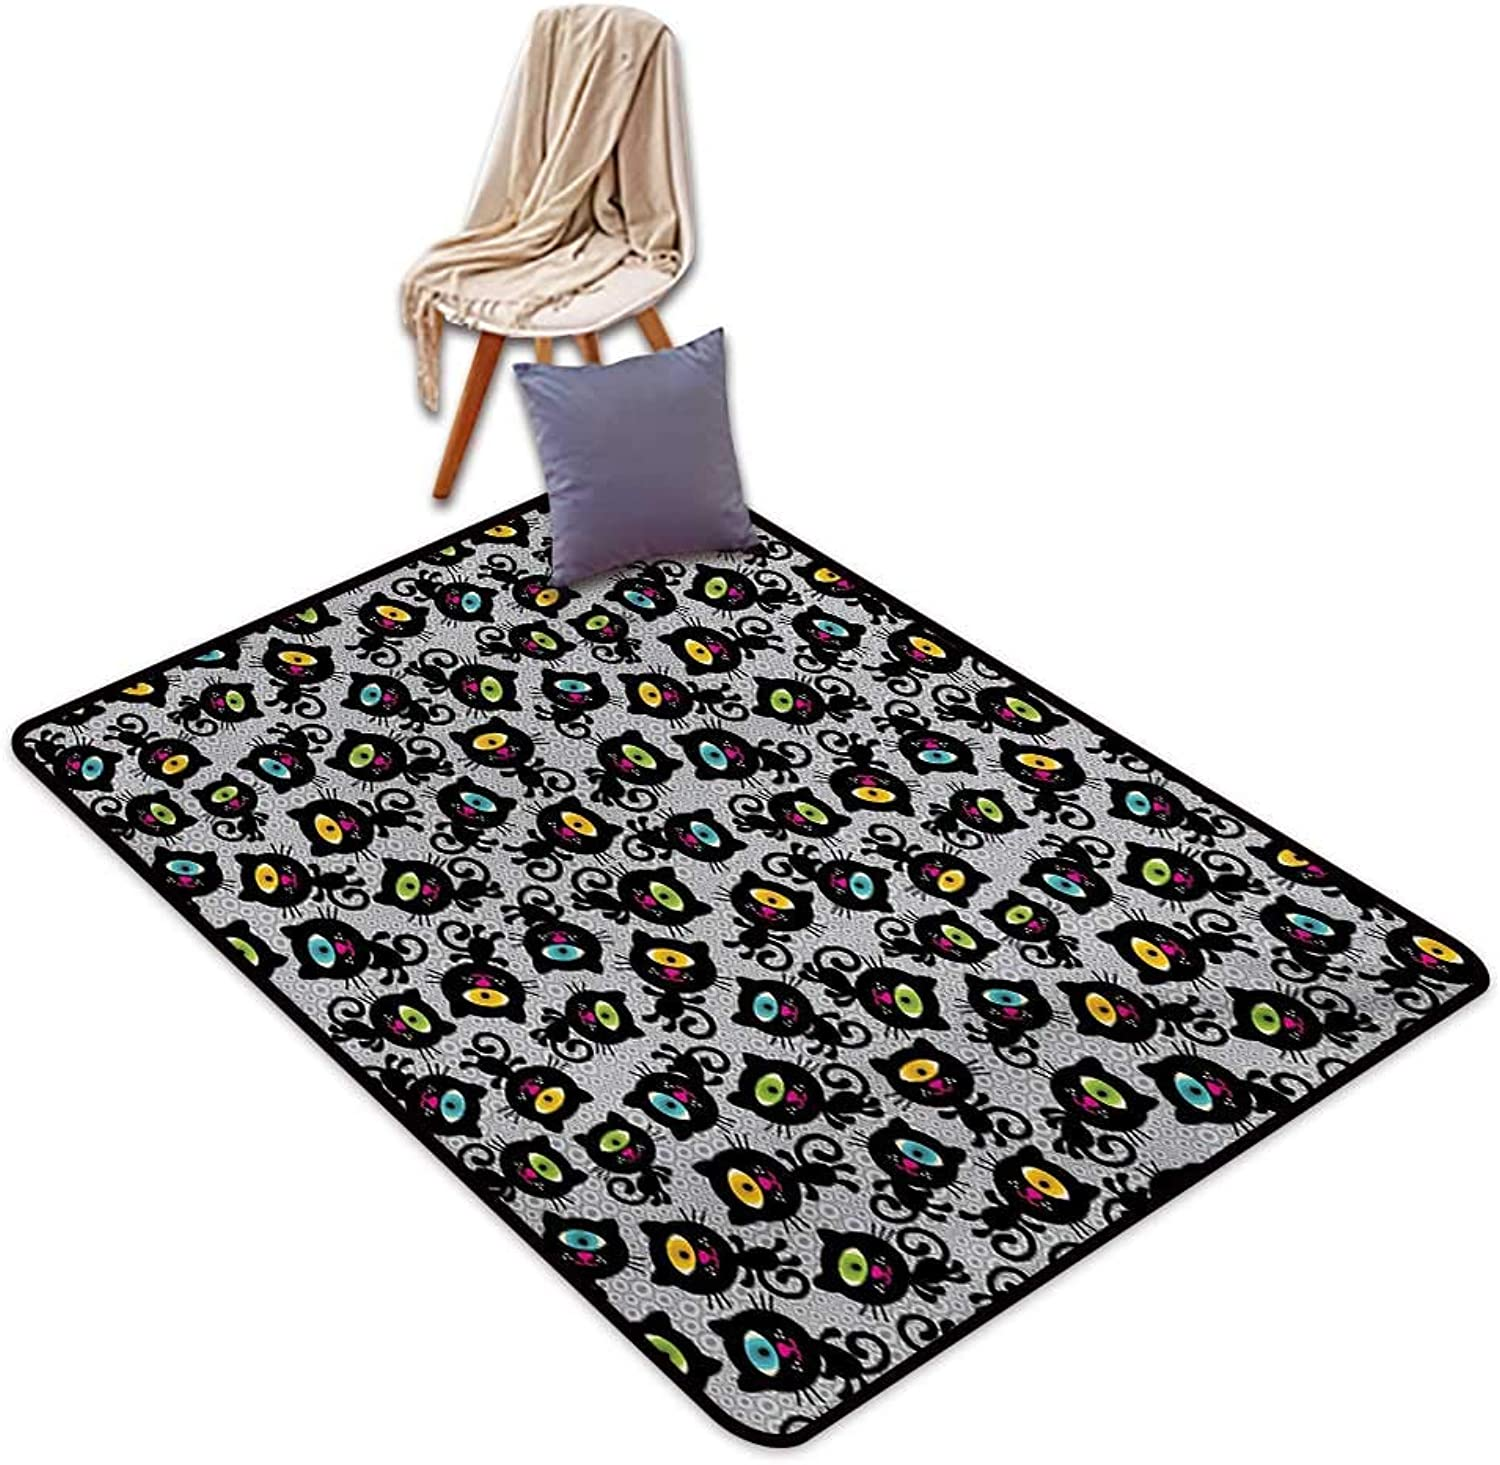 Cat Household Bathroom Door mat Kitty Forms with Trippy Eye on Head Freaky Spiritual Kitten Pets Animal Graphic Style Water Absorption, Anti-Skid and Oil Proof 48  Wx59 L Black Grey